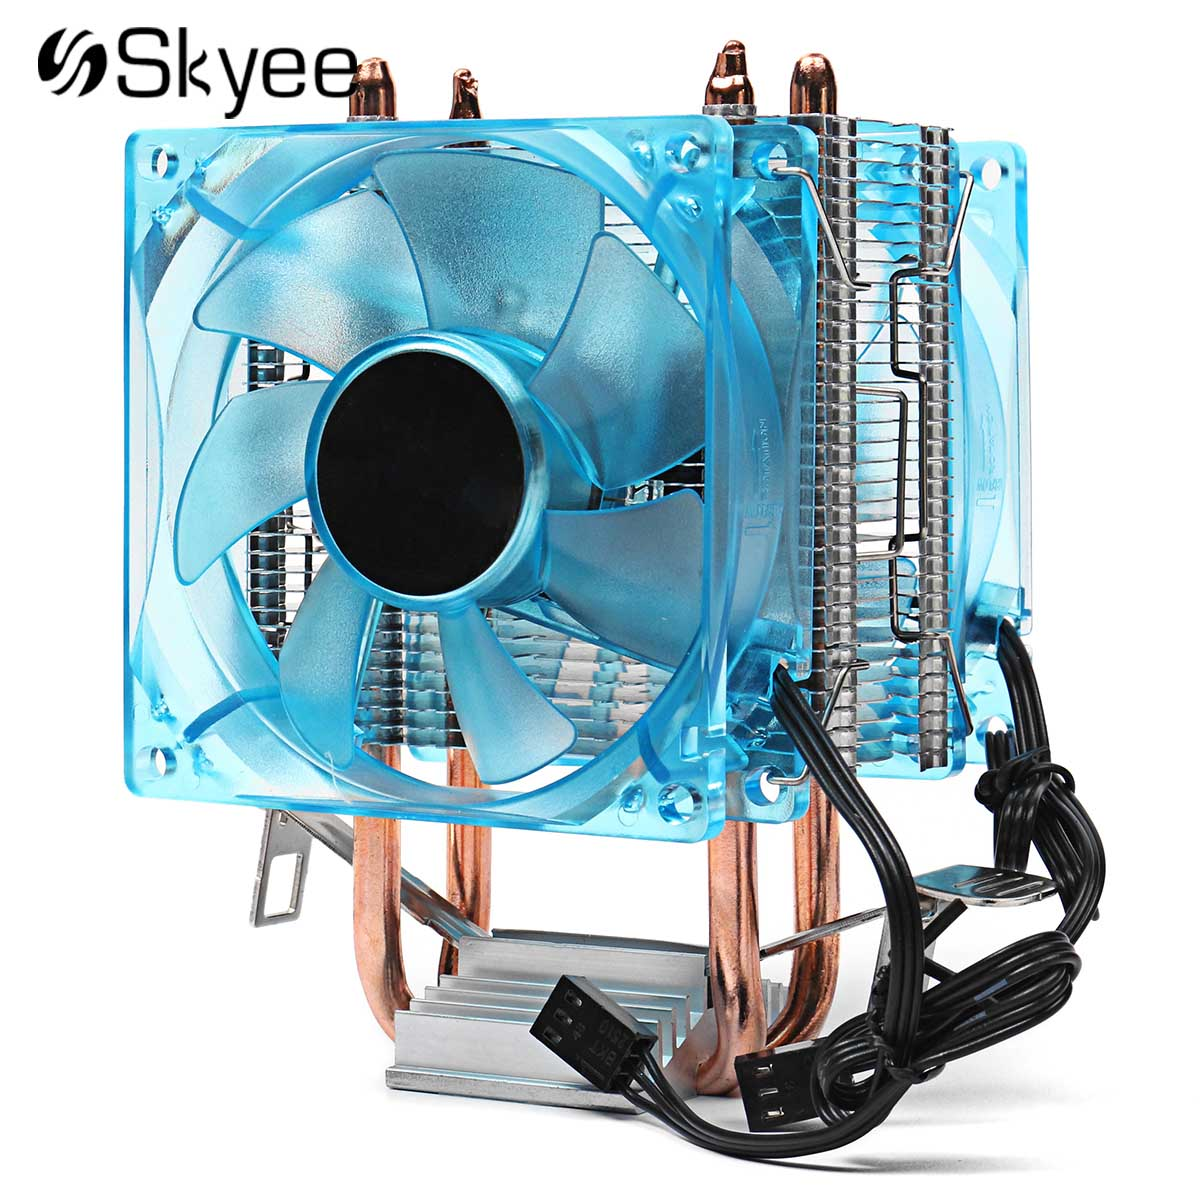 Aluminum CPU Cooling Fan Cooler Heatsink Fan 90mm Dual Copper Pipe LED CPU Cooling Fan for AMD FM1 AM2+ AM3+ Intel 775 1155 1156 3pin 12v cpu cooling cooler copper and aluminum 110w heat pipe heatsink fan for intel lga1150 amd computer cooler cooling fan